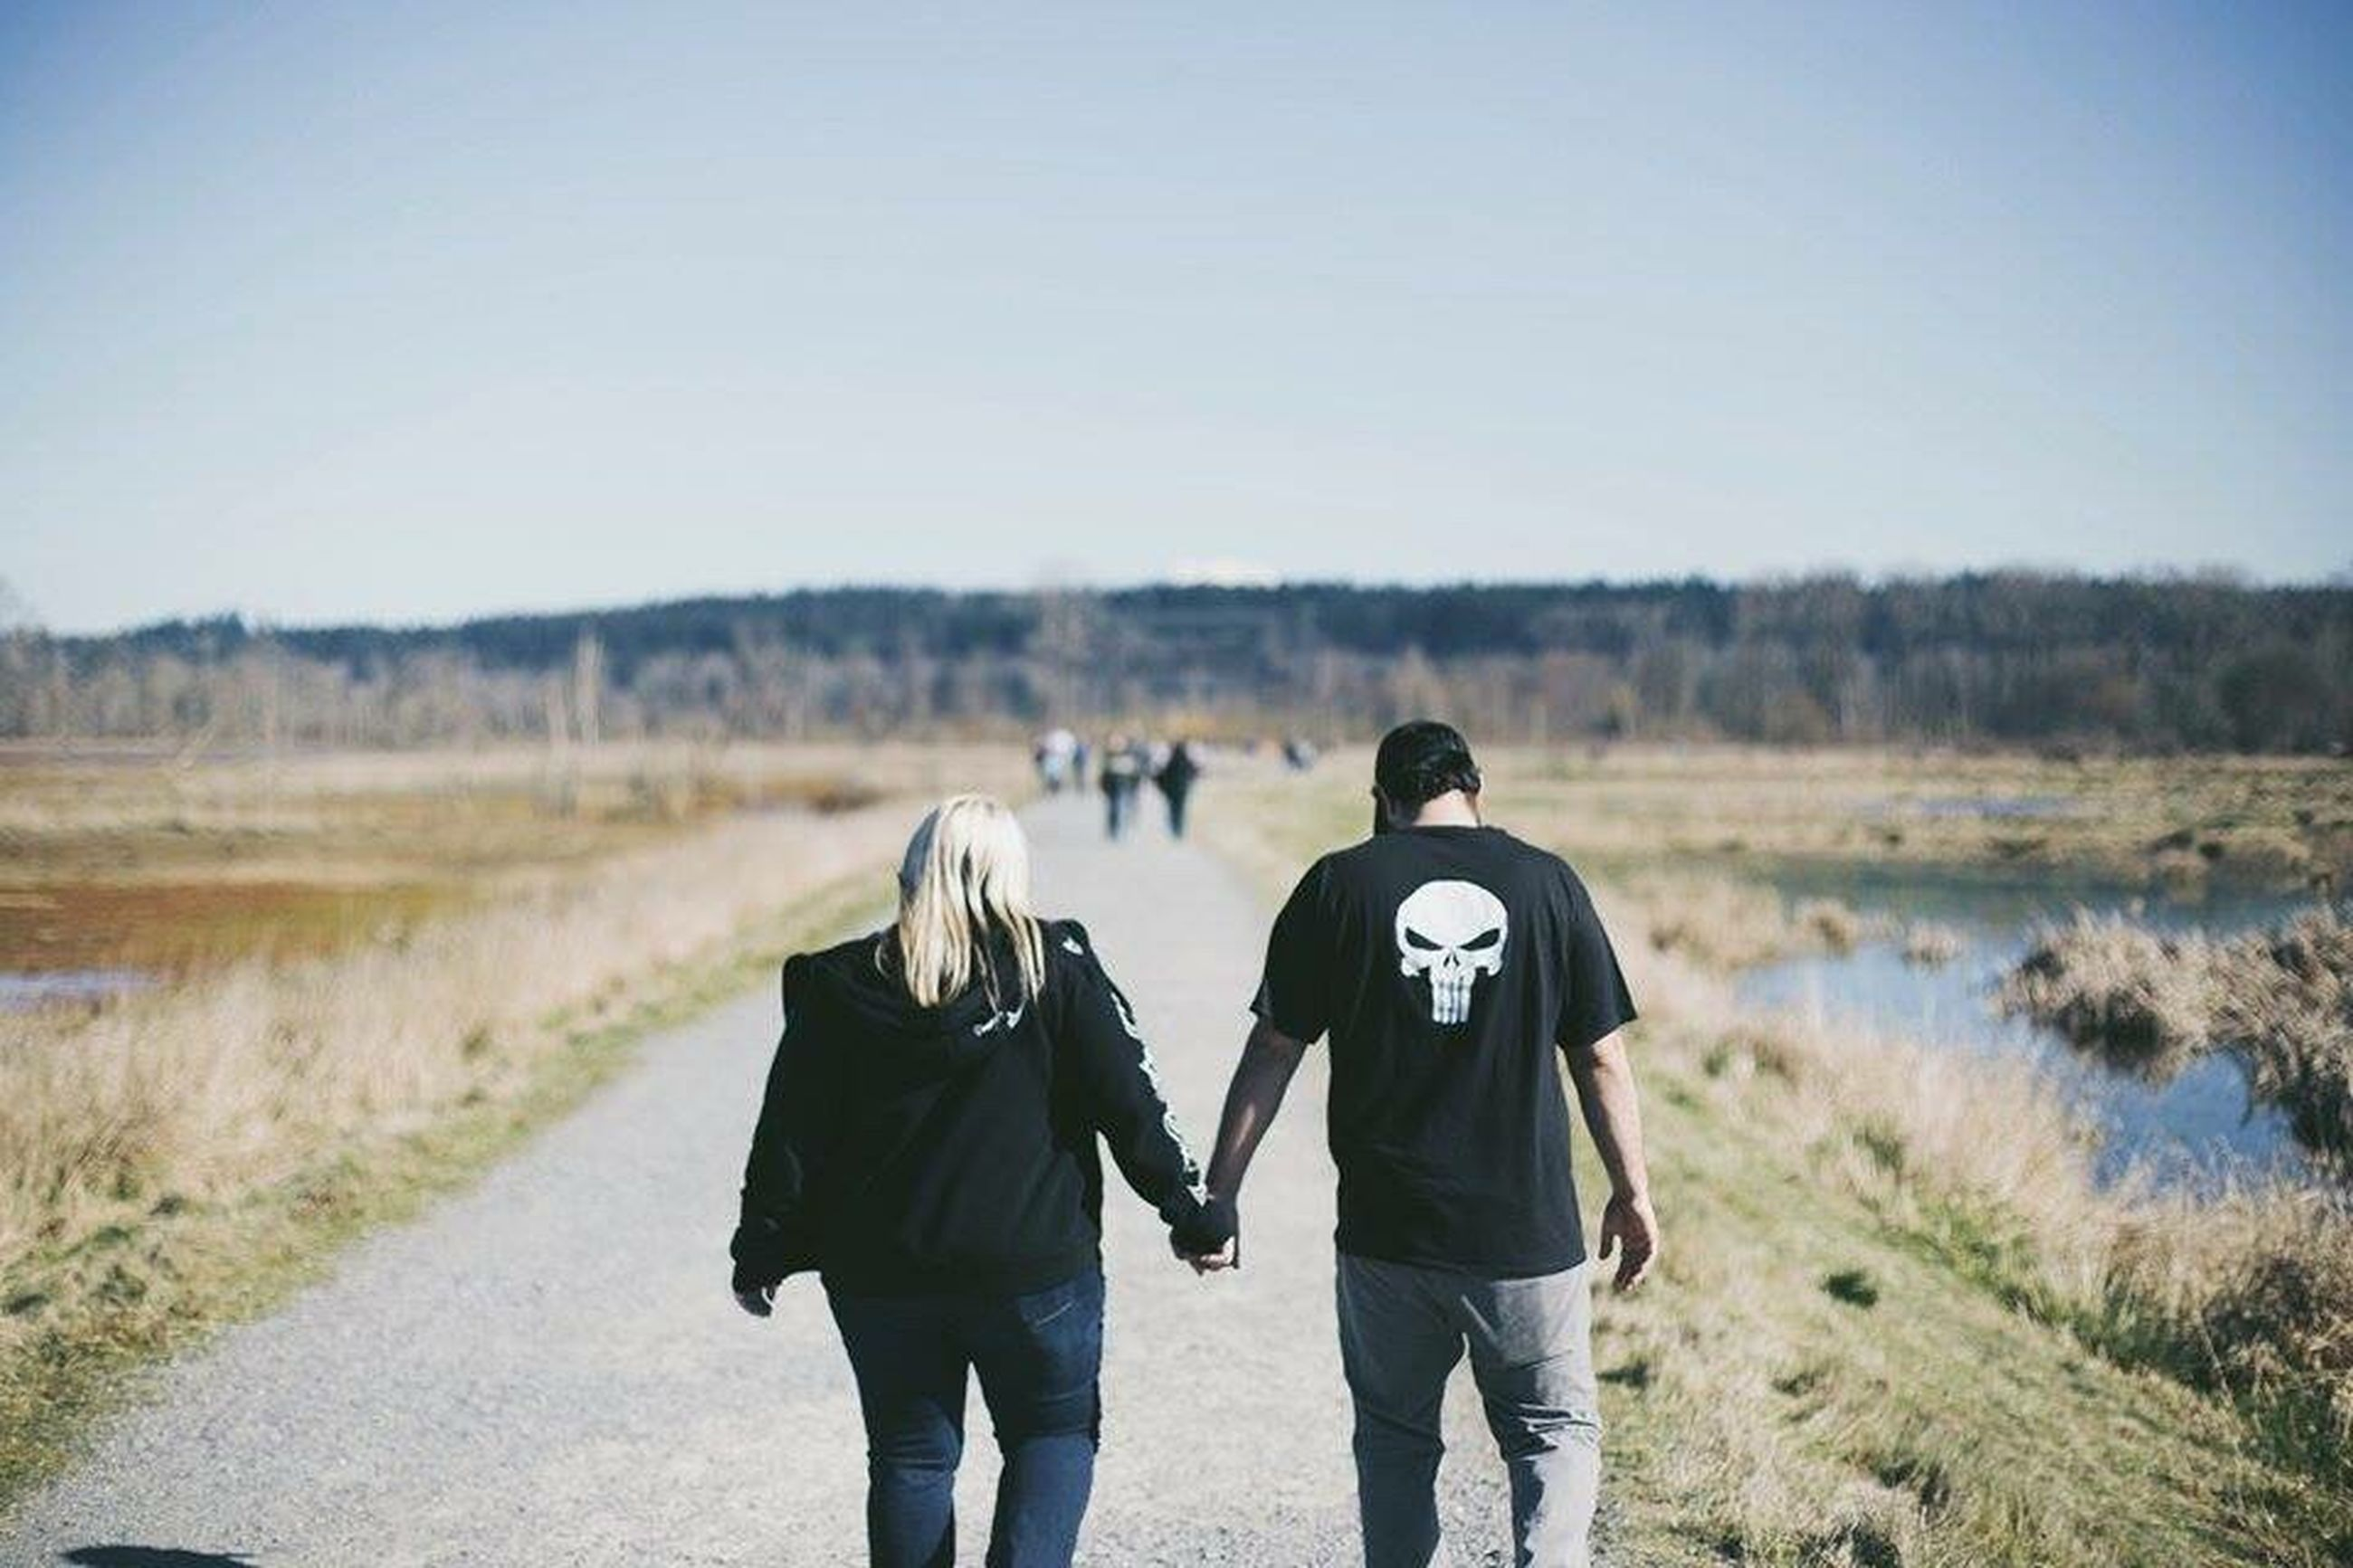 two people, togetherness, rear view, walking, clear sky, outdoors, hiking, adults only, women, friendship, day, winter, sky, cold temperature, adult, people, adventure, nature, young adult, warm clothing, only women